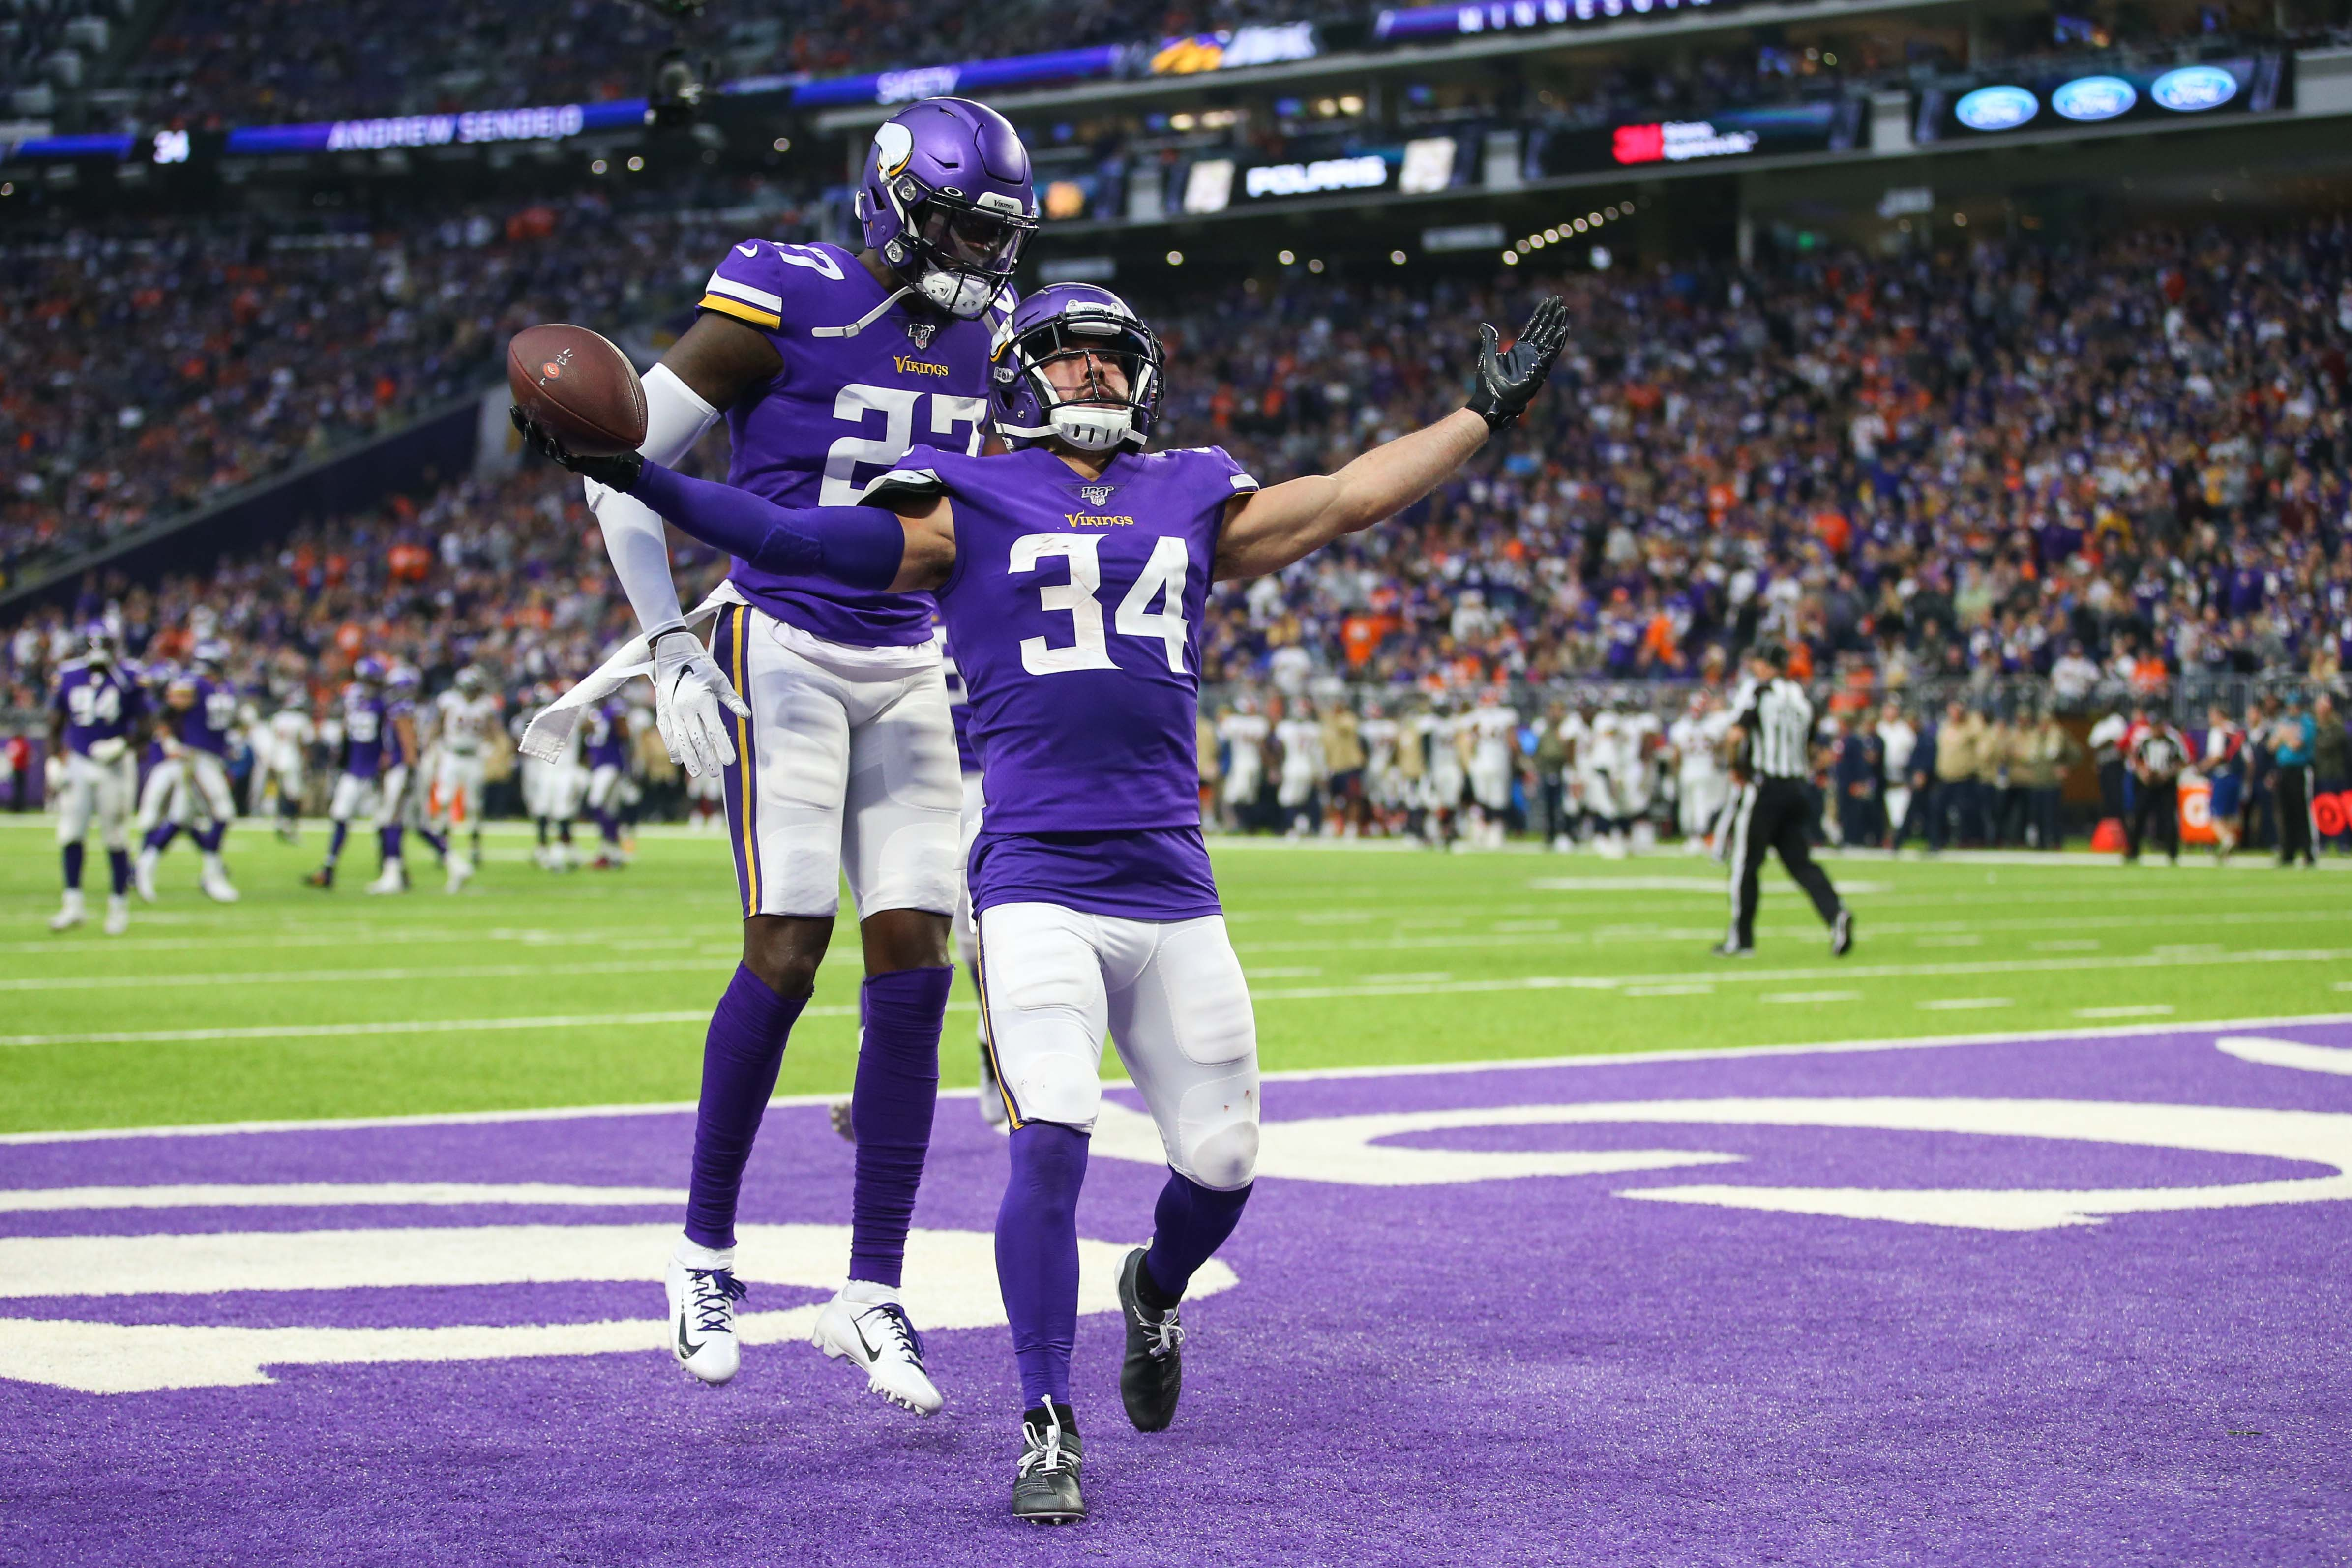 Nov 17, 2019; Minneapolis, MN, USA; Minnesota Vikings defensive back Andrew Sendejo (34) celebrates with defensive back Jayron Kearse (27) after intercepting a pass against the Denver Broncos during the second quarter at U.S. Bank Stadium. Mandatory Credit: Ben Ludeman-USA TODAY Sports